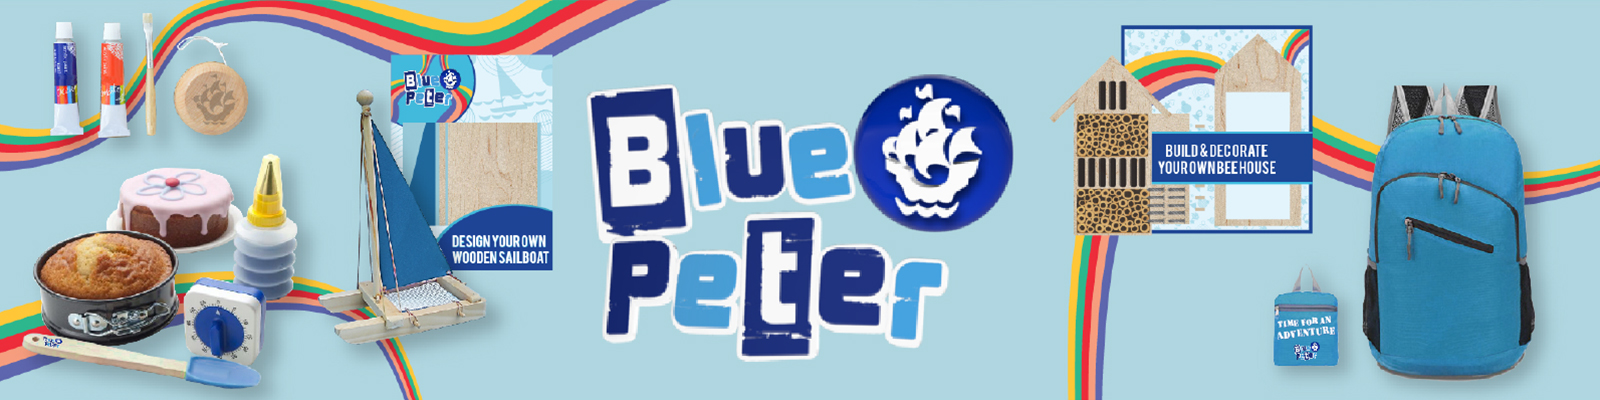 Blue Peter Kids Logo